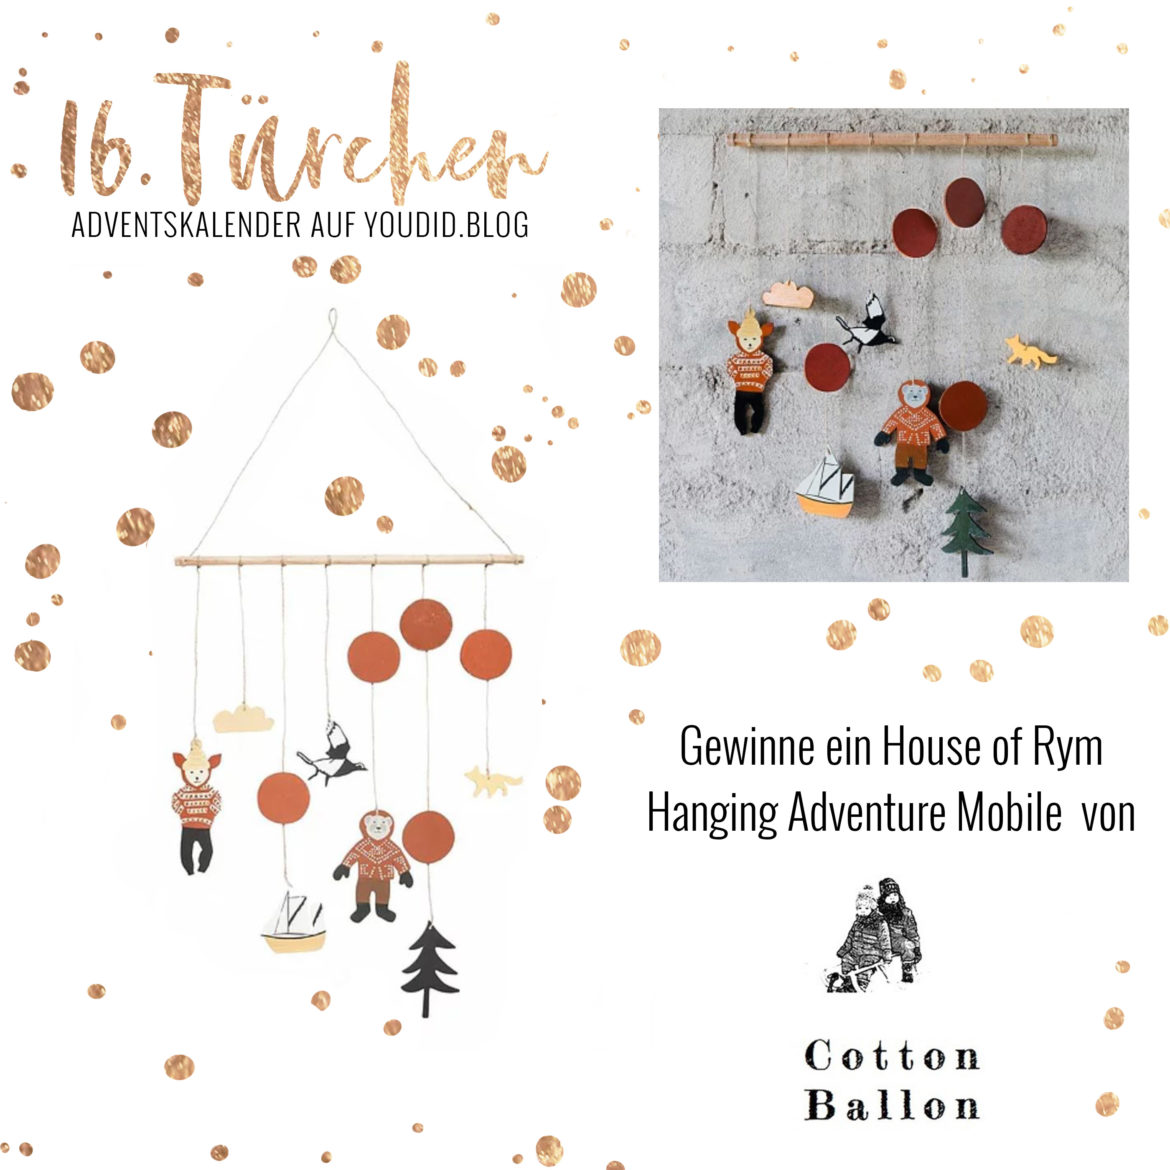 Special Adventskalender auf Youdid.Blog Gewinnbild Gewinne ein House of Rym Hanging Adventure Mobile von Cotton Ballon